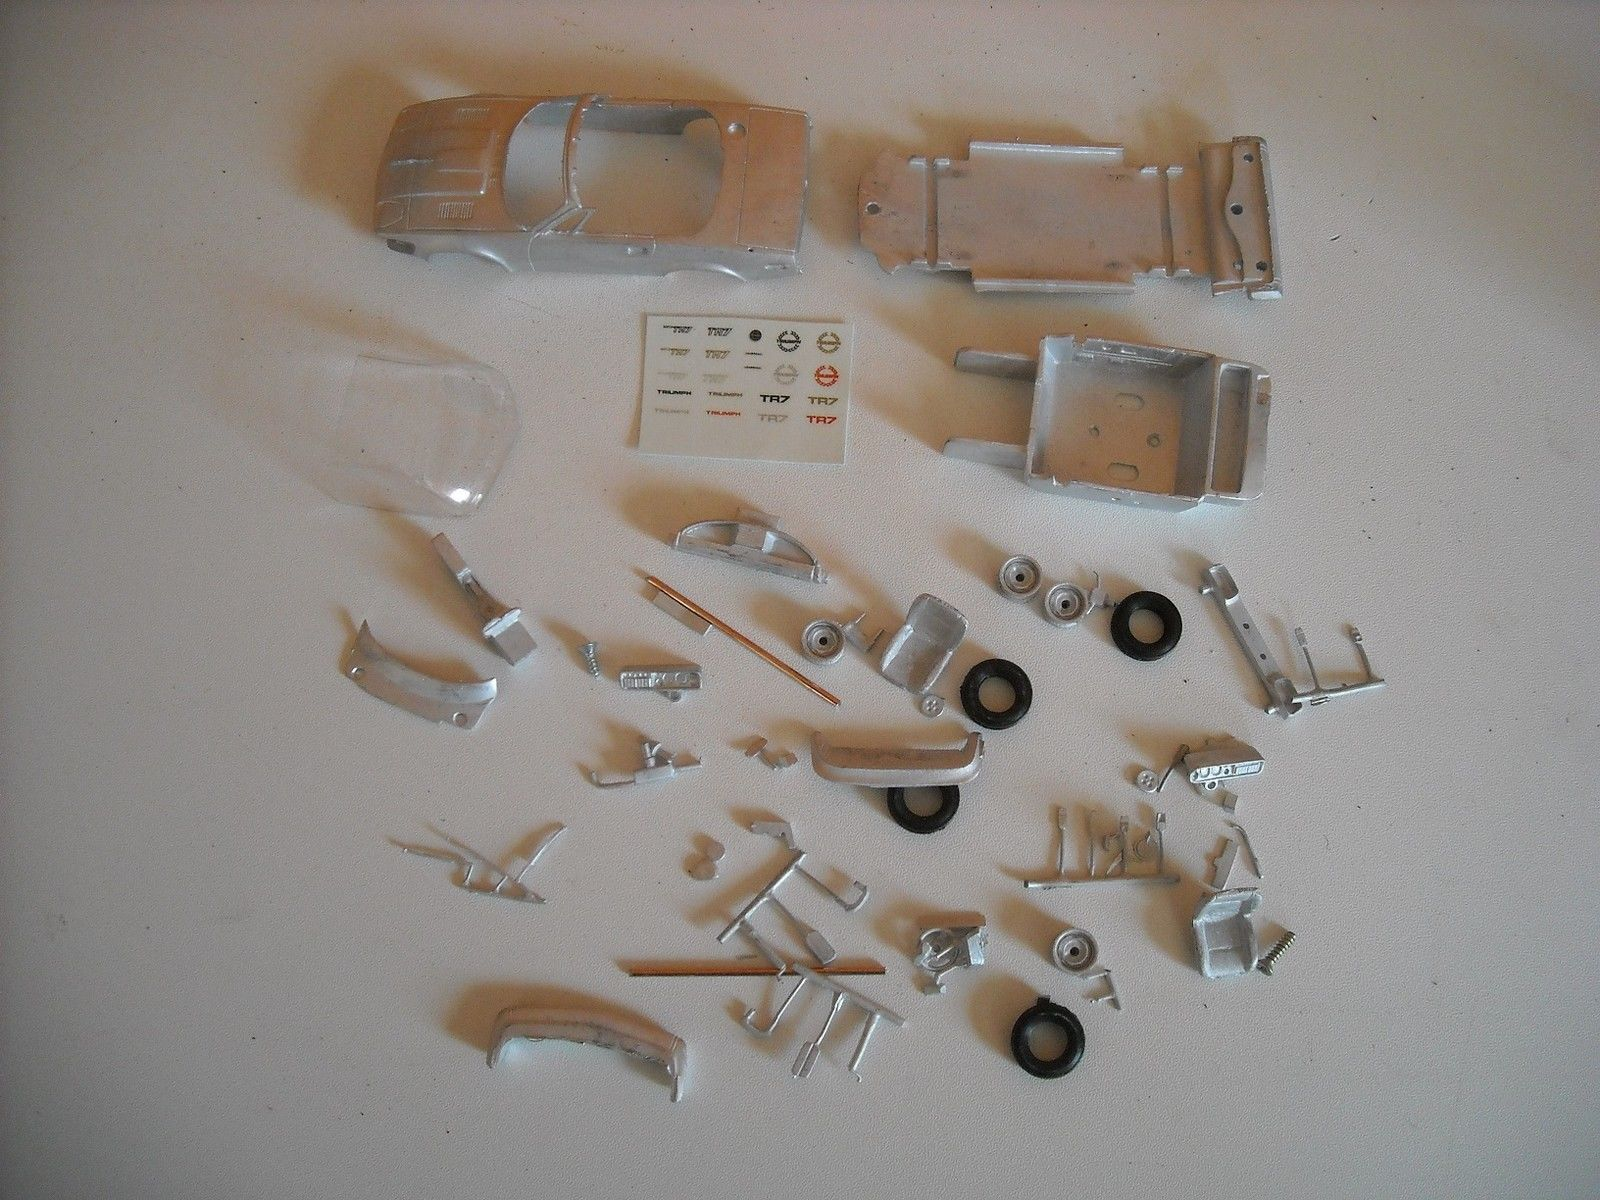 Triumph TR7 or TR8 DHC drop head coupe in 1 43rd scale by K & R Replicas